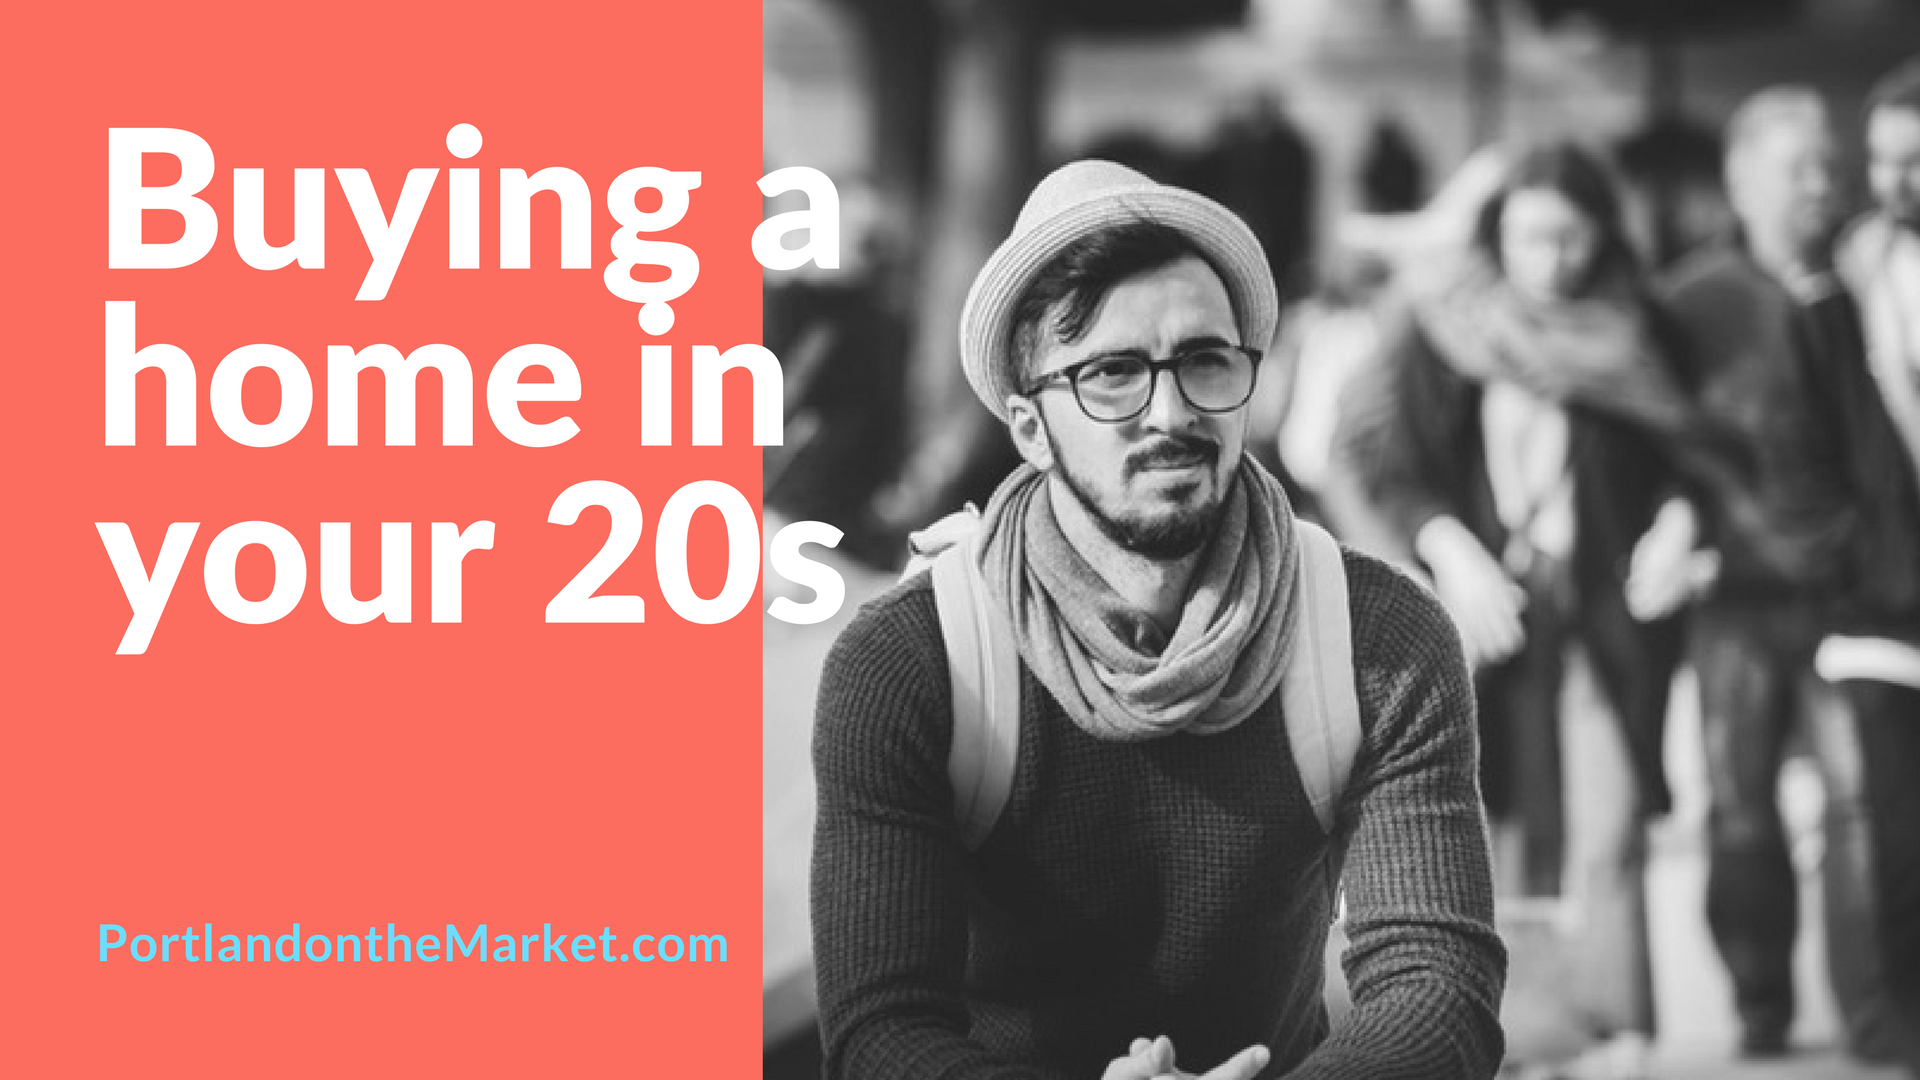 How to Buy a House in Your 20s